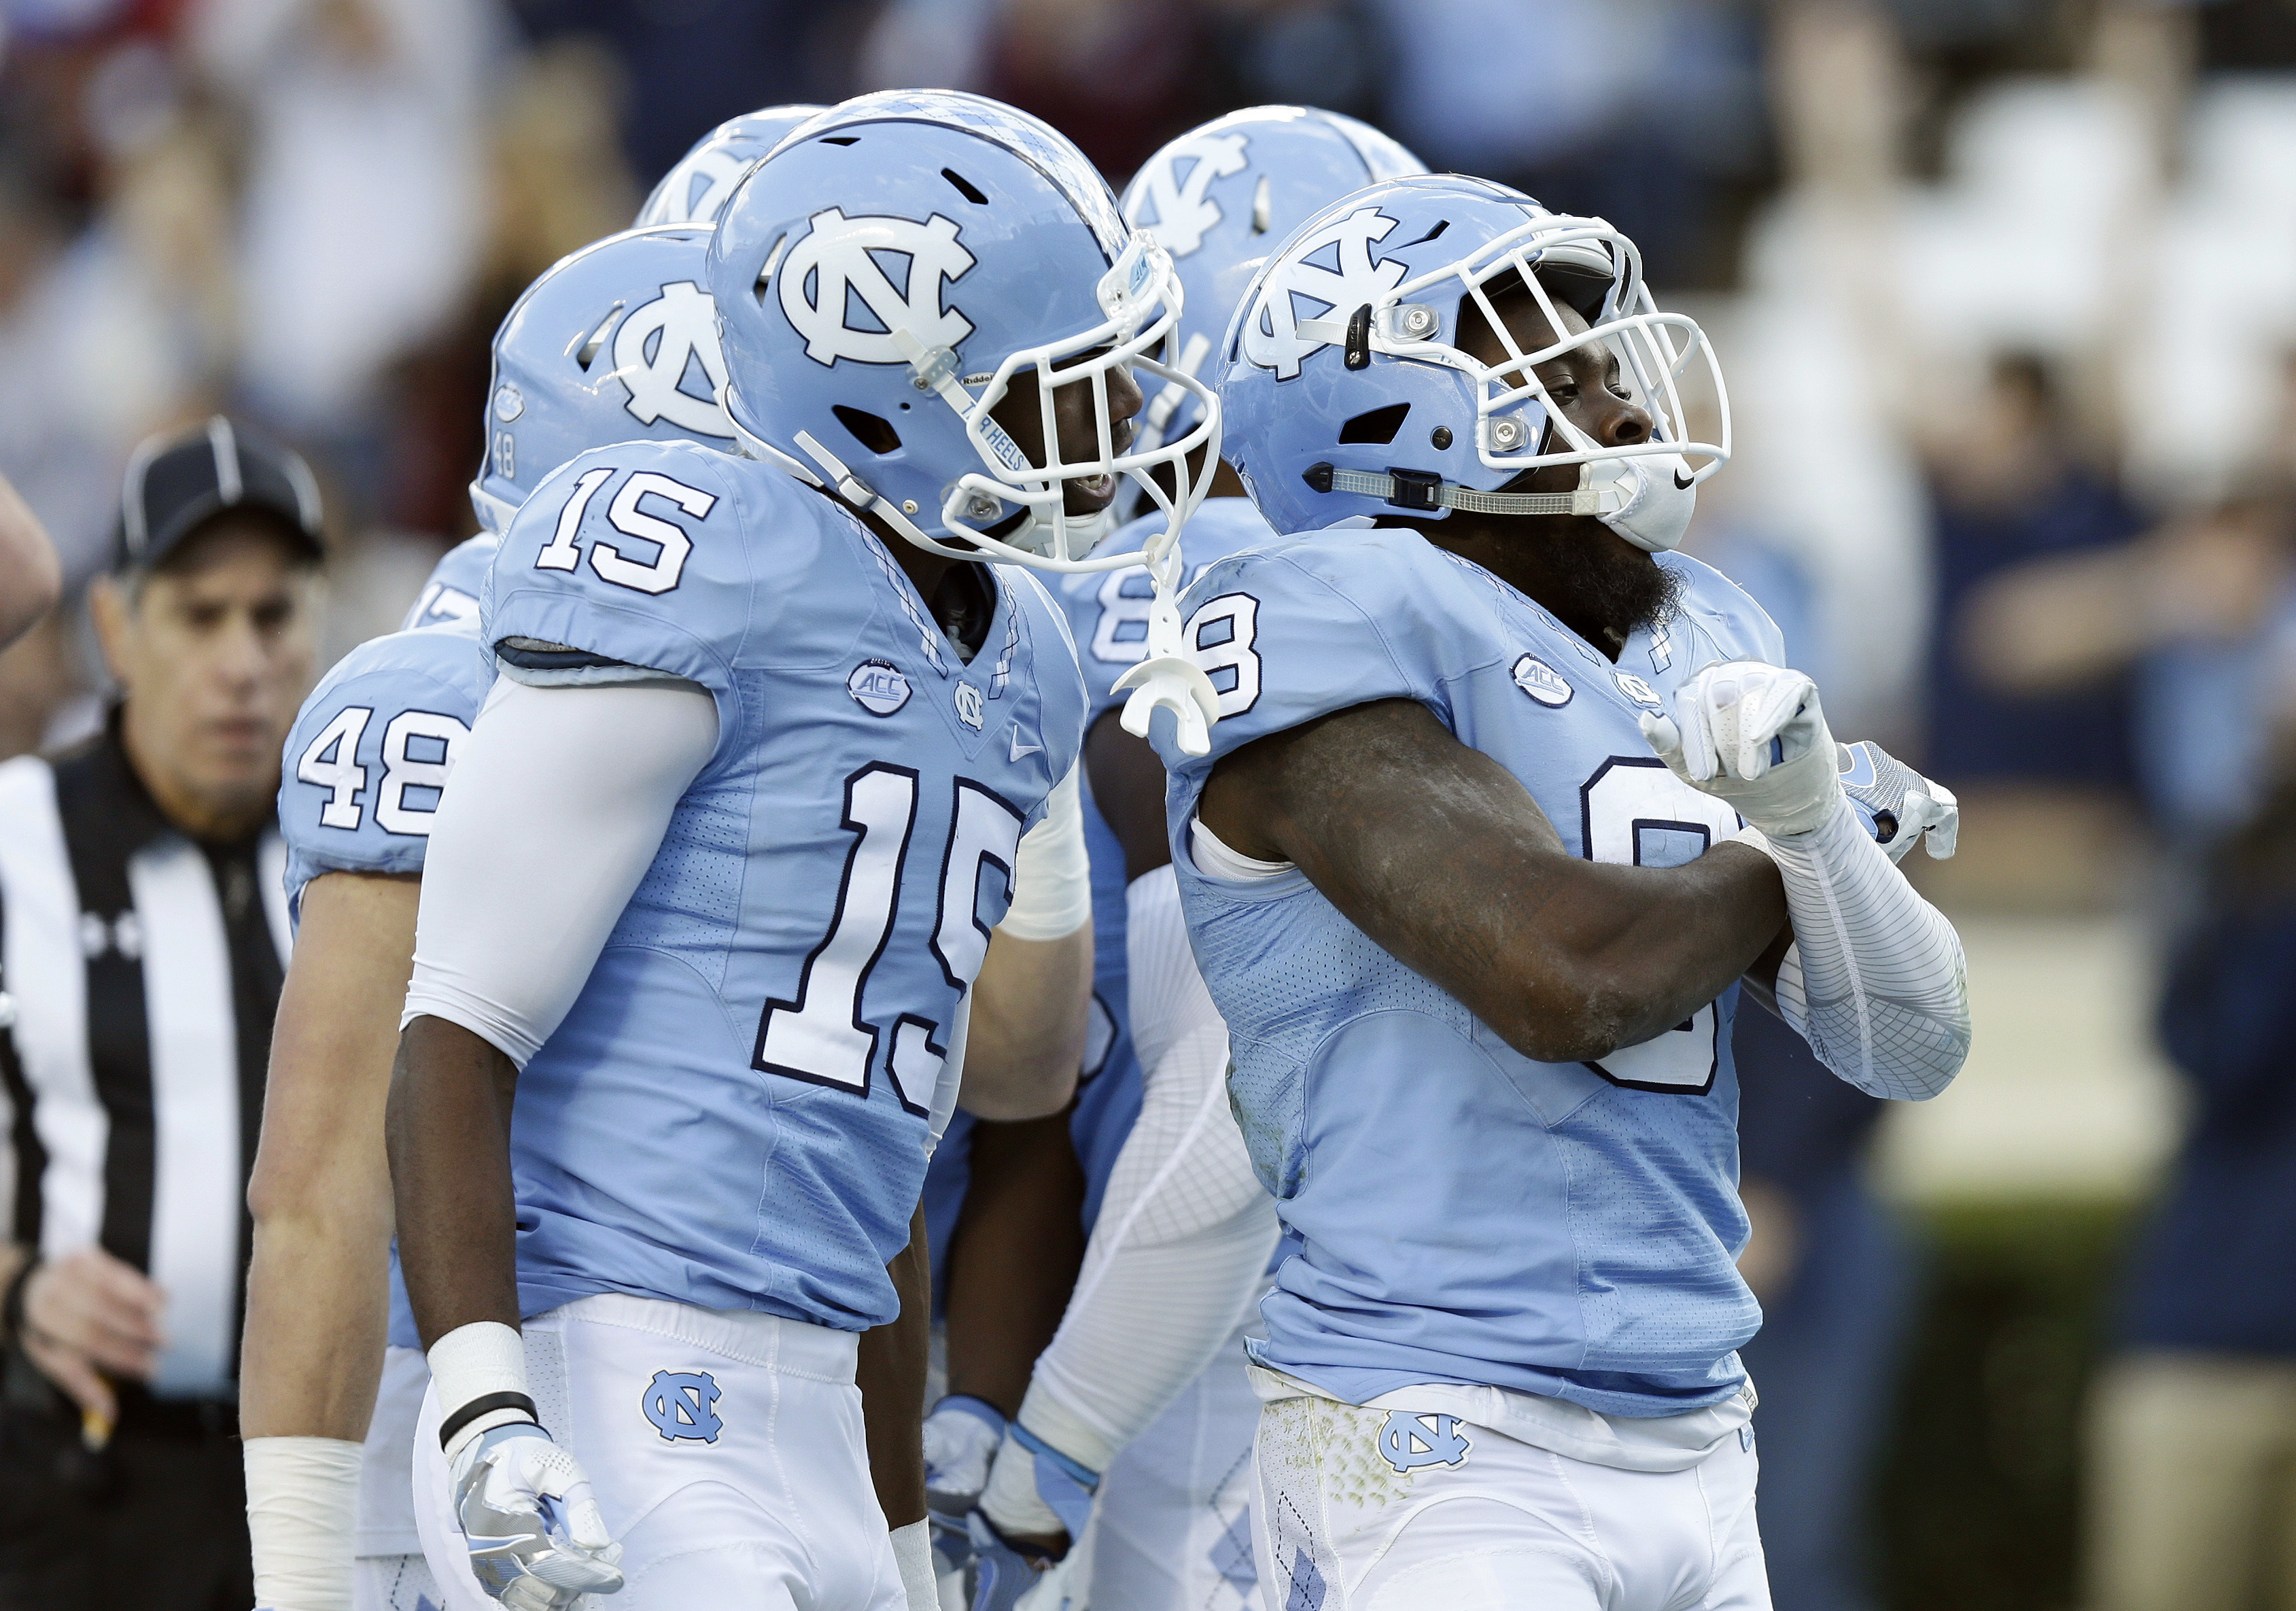 North Carolina's T.J. Logan (8) and Jordan Cunningham (15) celebrate Logan's touchdown against The Citadel during the first half of an NCAA college football game in Chapel Hill, N.C., Saturday, Nov. 19, 2016. (AP Photo/Gerry Broome)